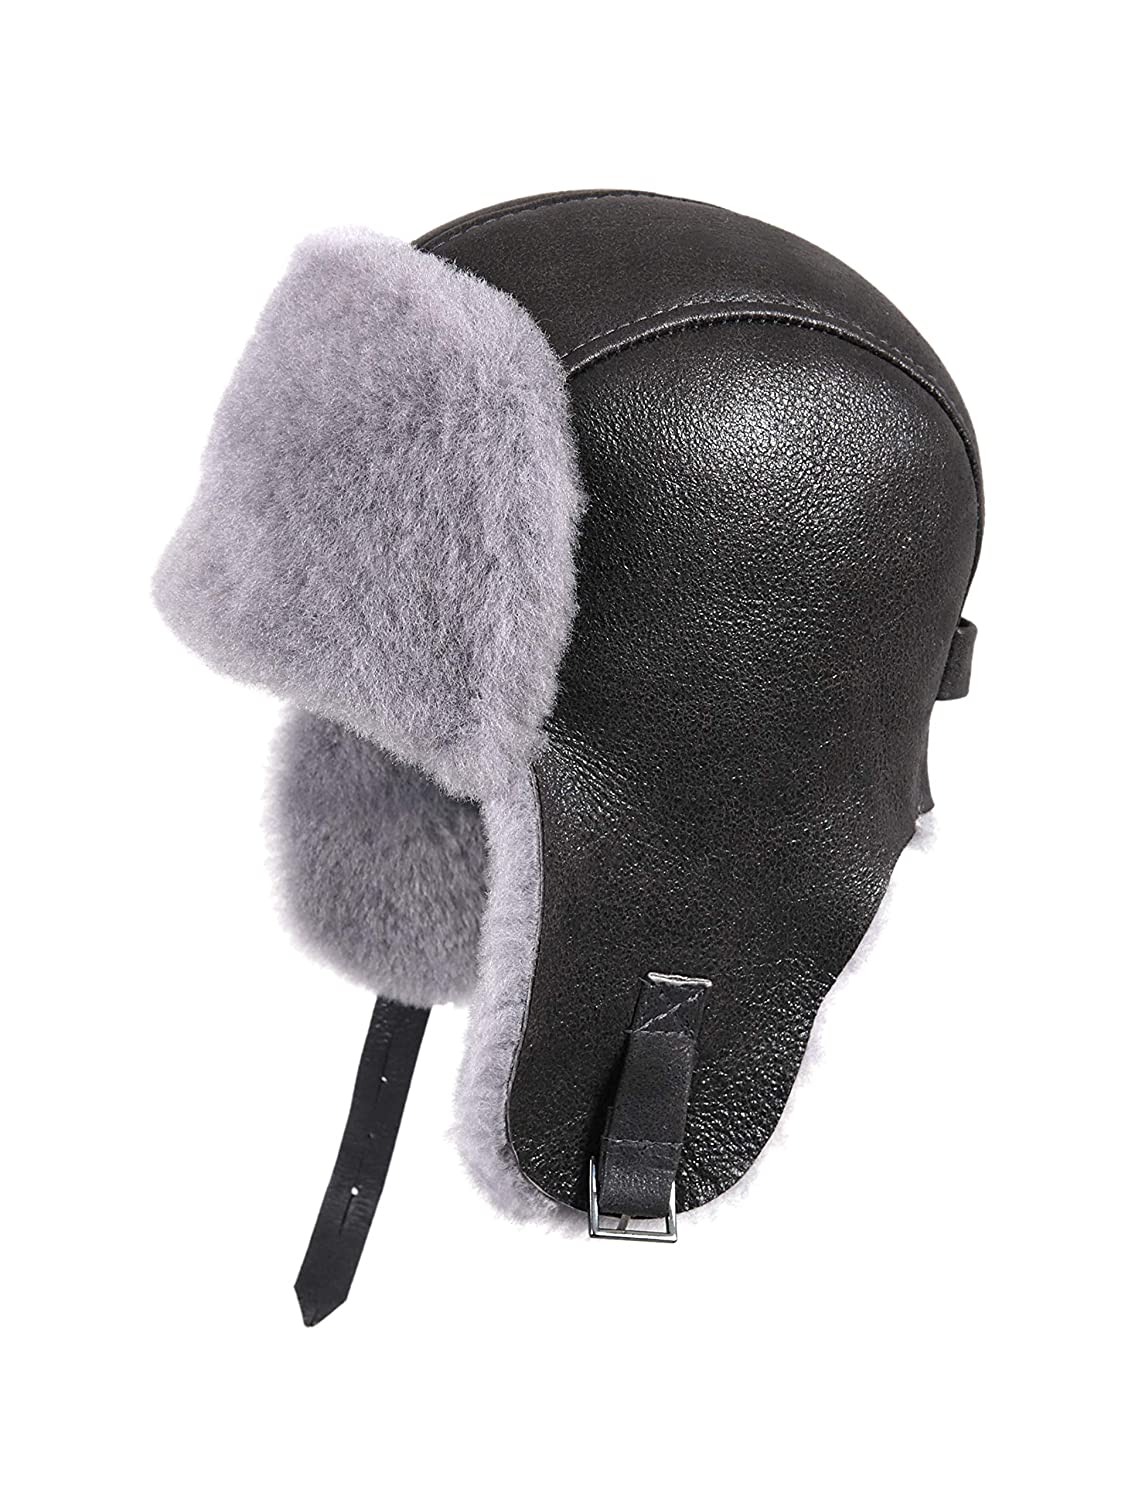 61a43e5323126 Amazon.com  Zavelio Women s Shearling Sheepskin Pilot Hat  Clothing